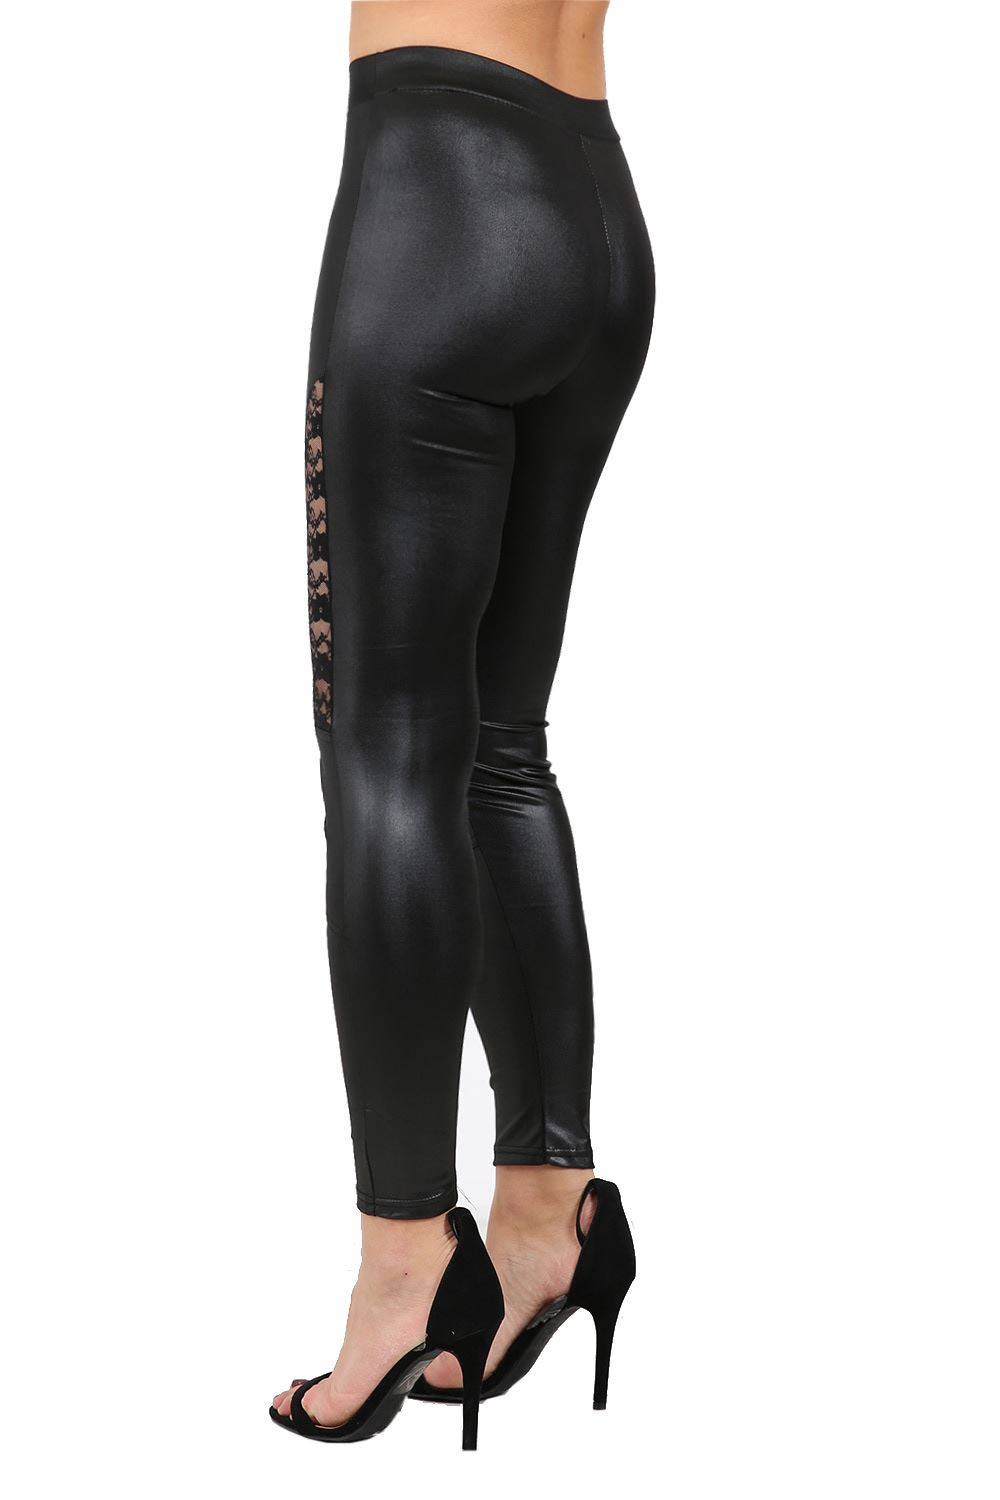 Awesome Women Plus Size Black Leggings Footless Pants Long Faux Leather Design | EBay